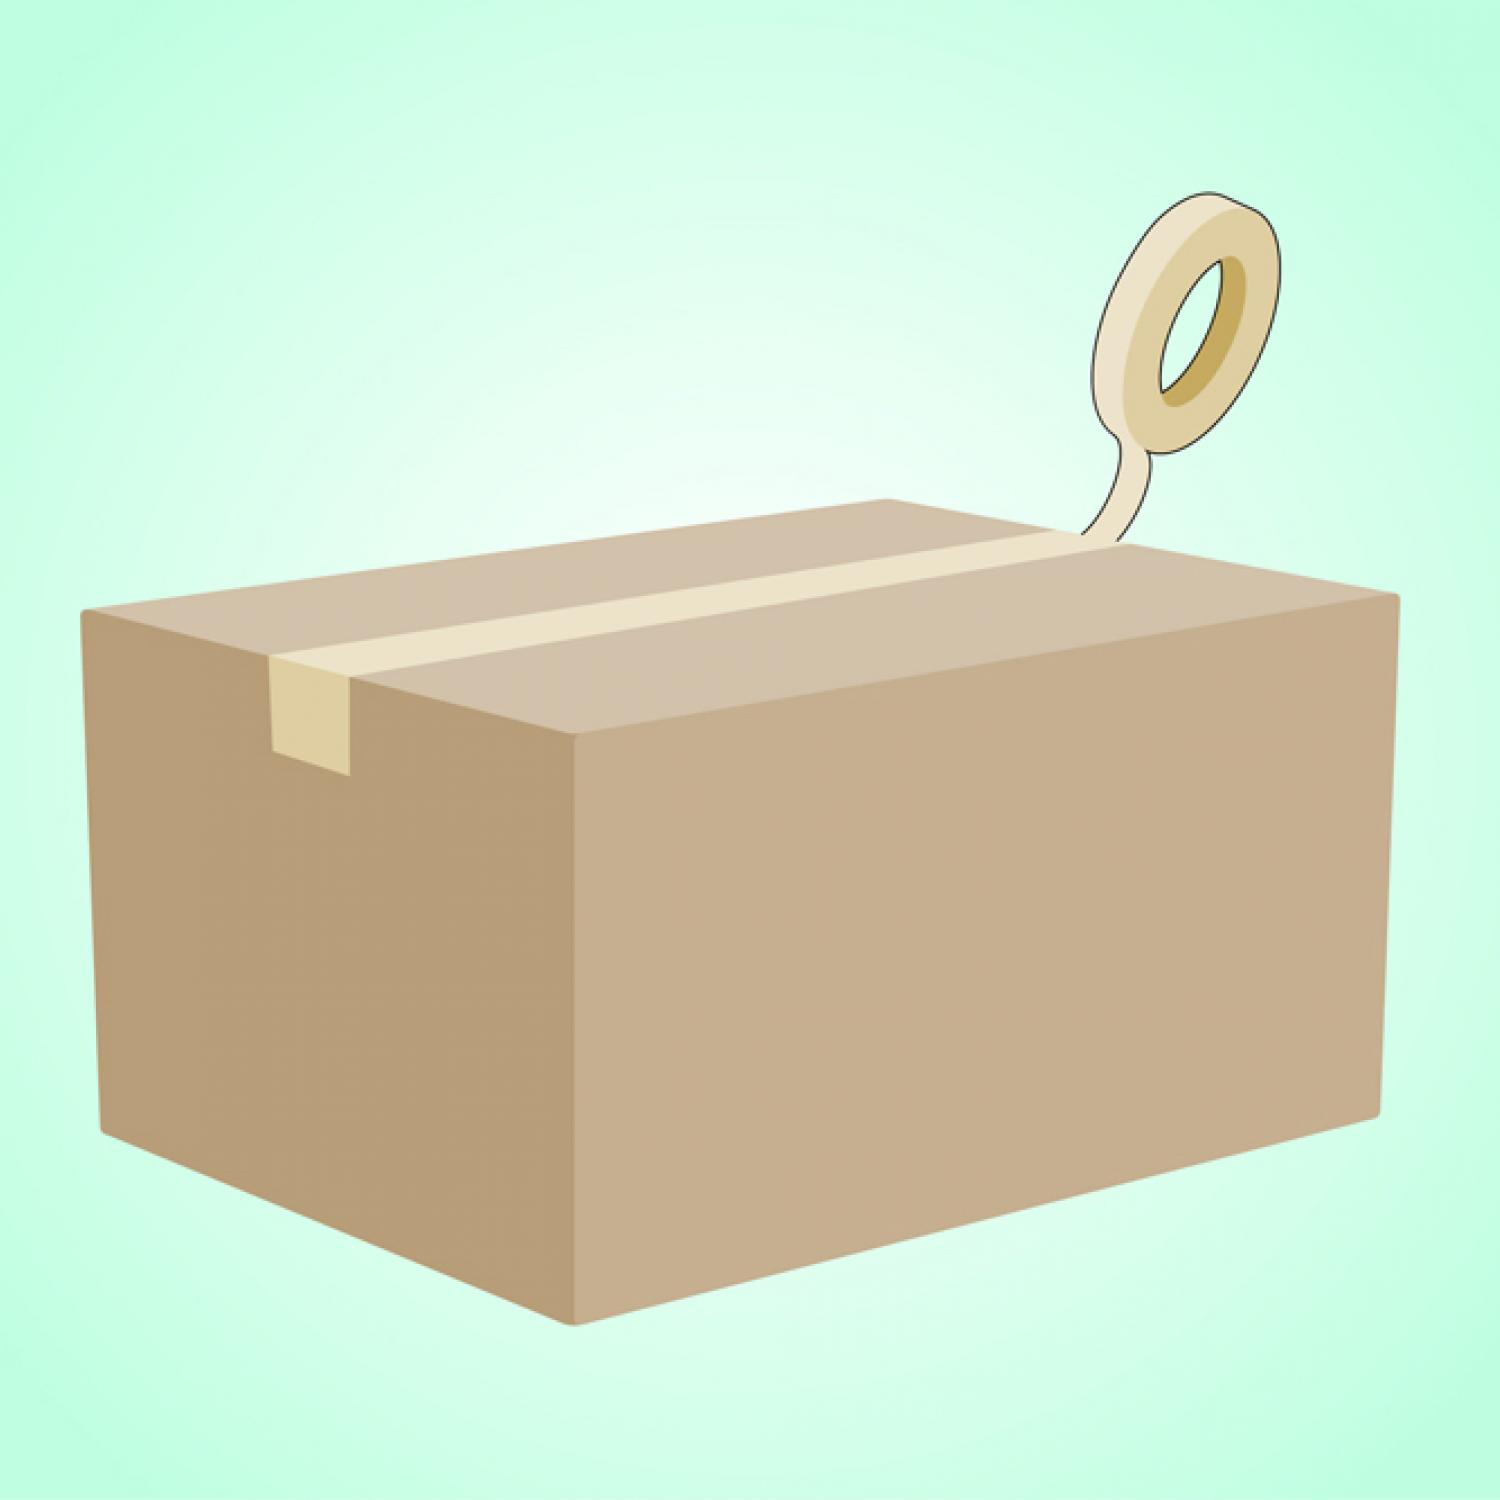 How to make a box of cardboard with your own hands 39